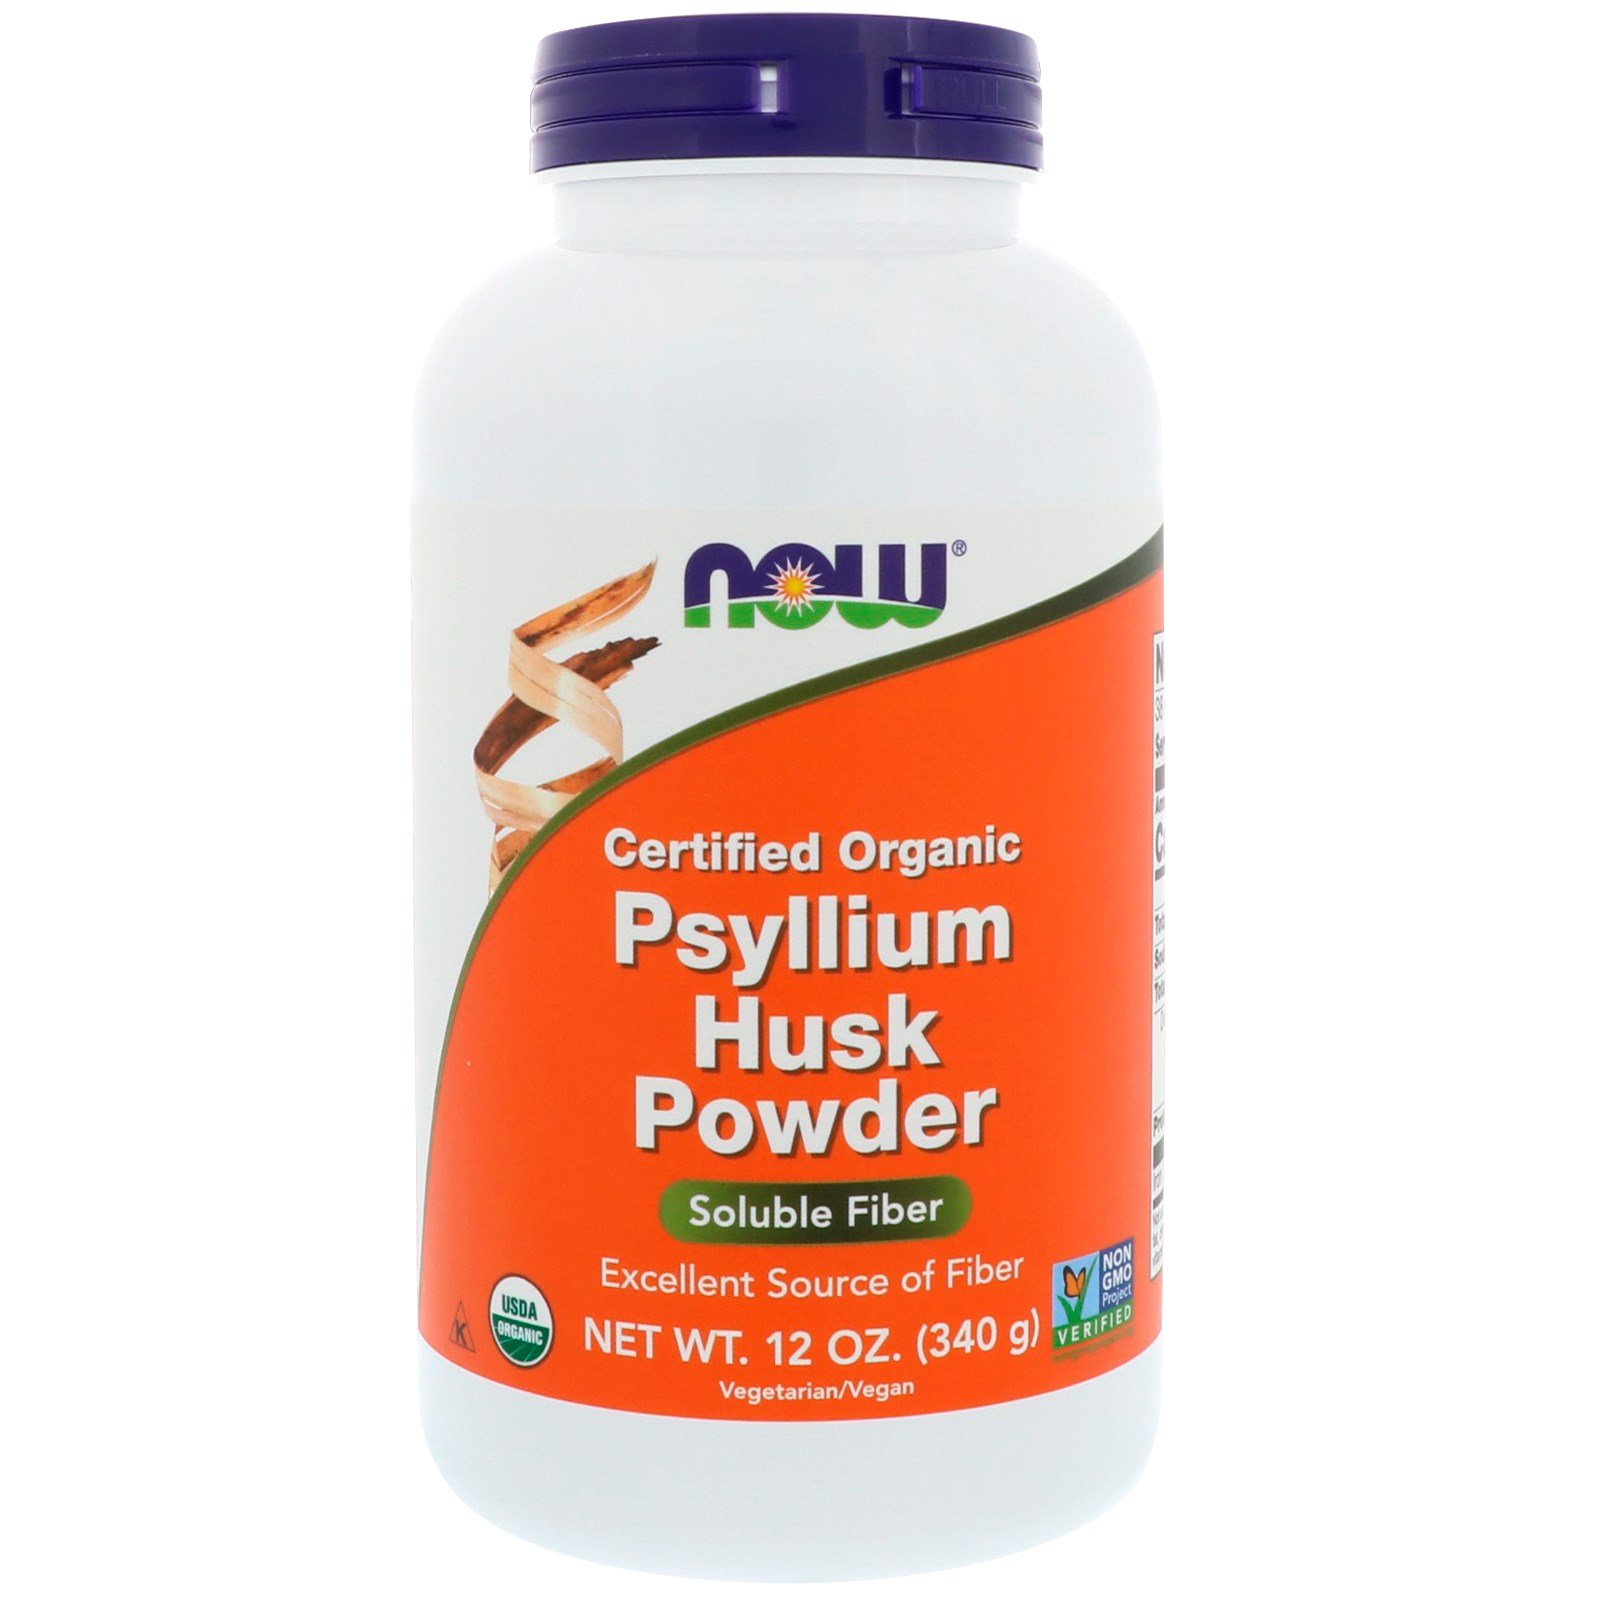 Where do you buy psyllium husk